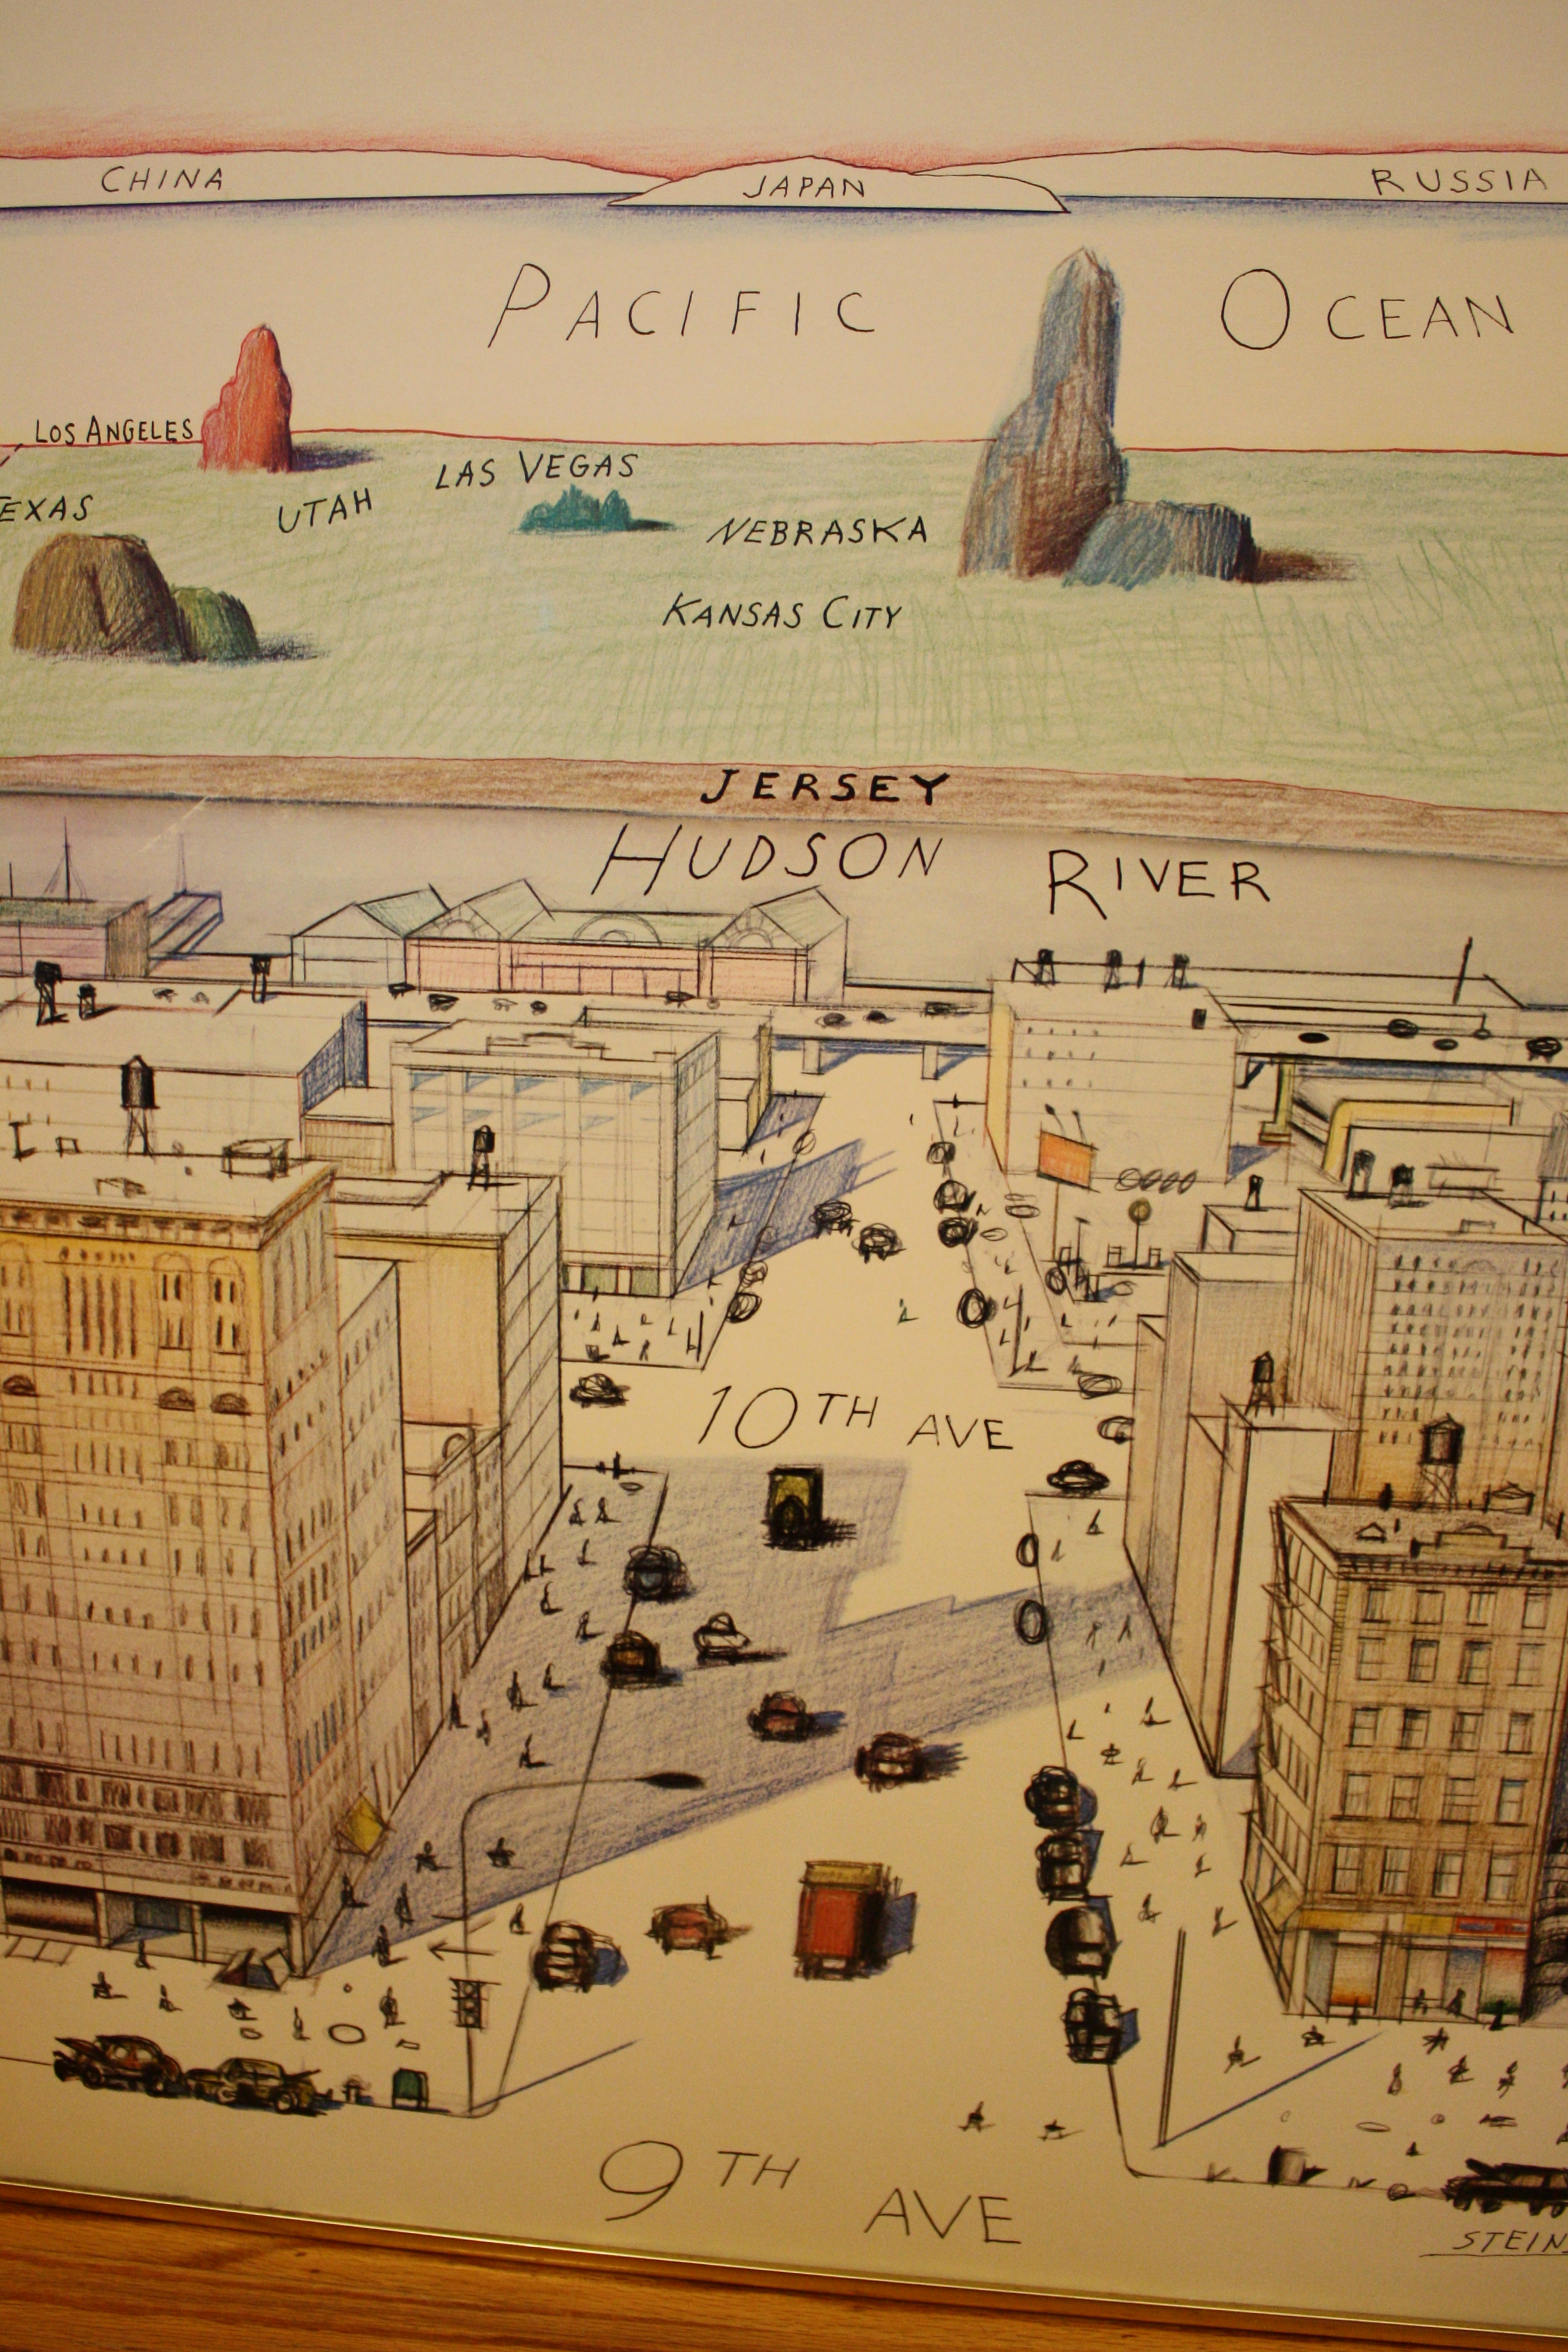 The New Yorker Cover View of the World from 9th Avenue